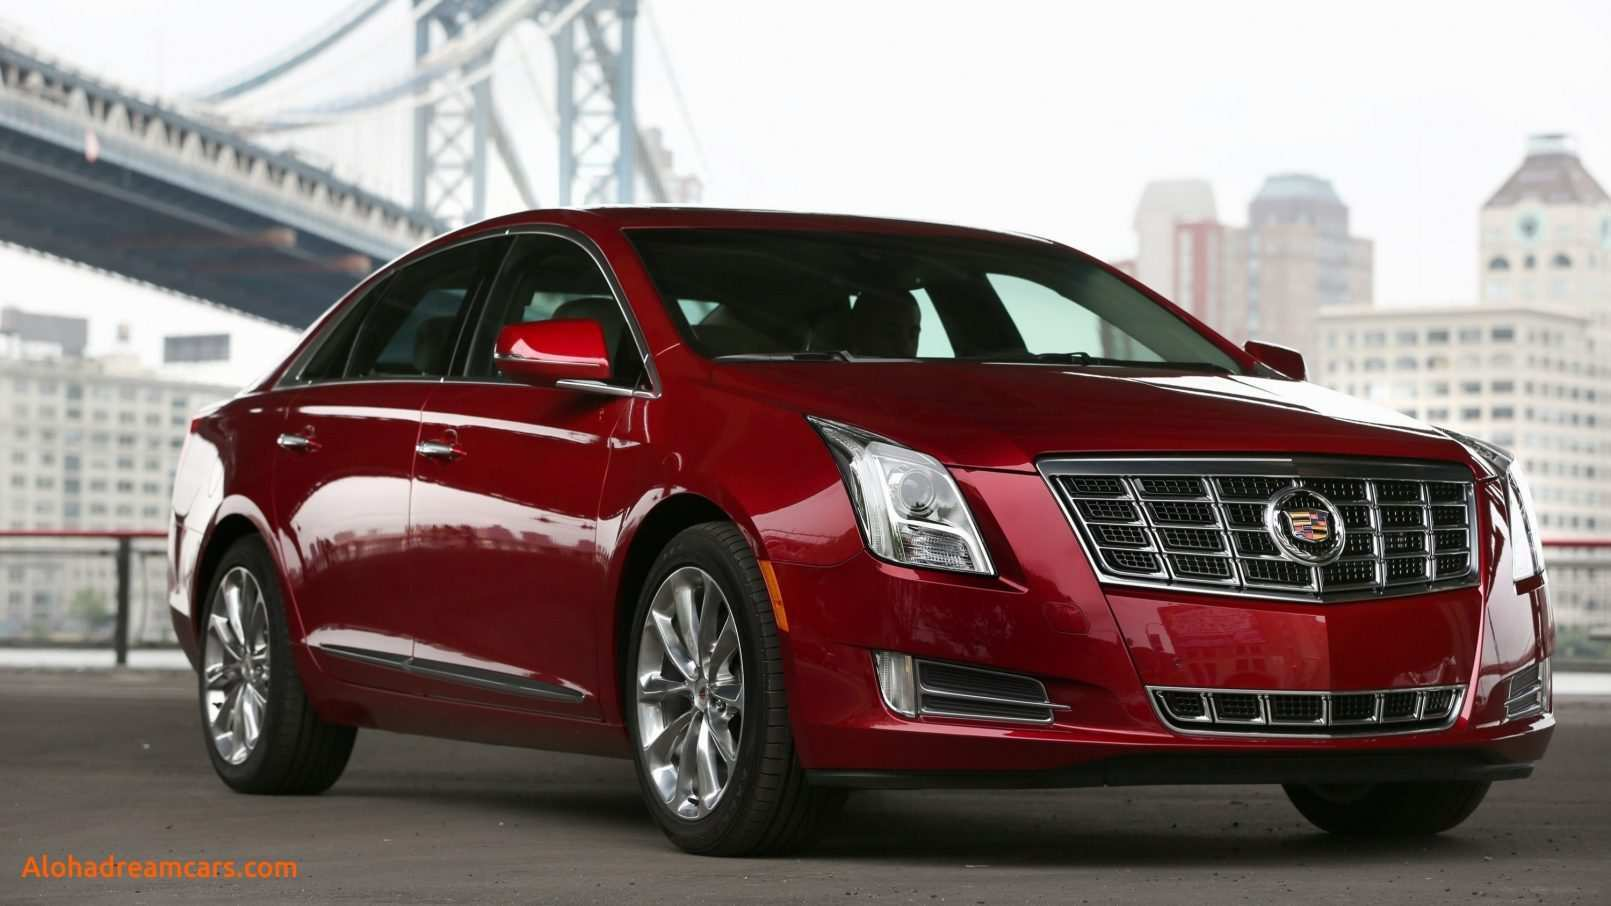 70 The 2019 Cadillac ELR Engine